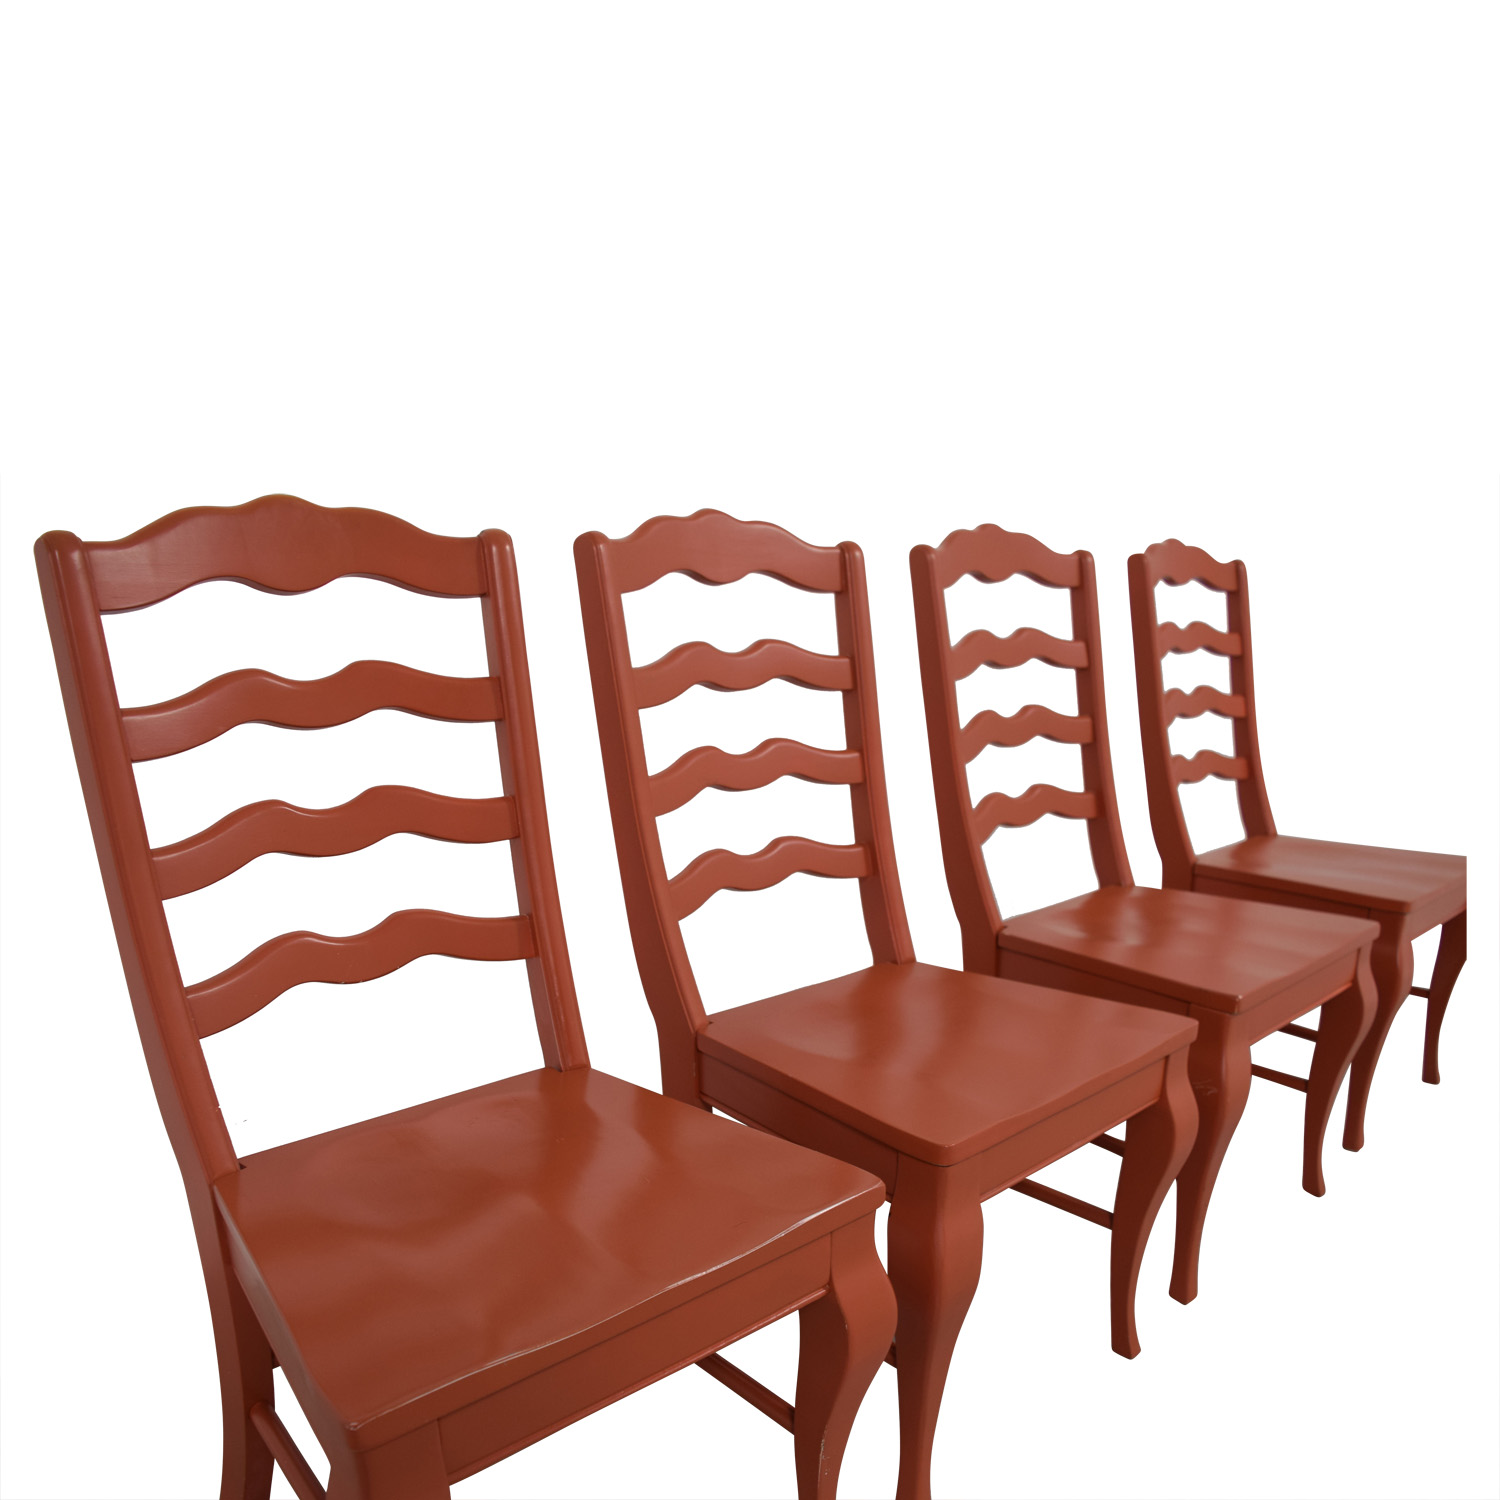 78 off broyhill broyhill dining room chairs chairs broyhill broyhill dining room chairs nyc dzzzfo